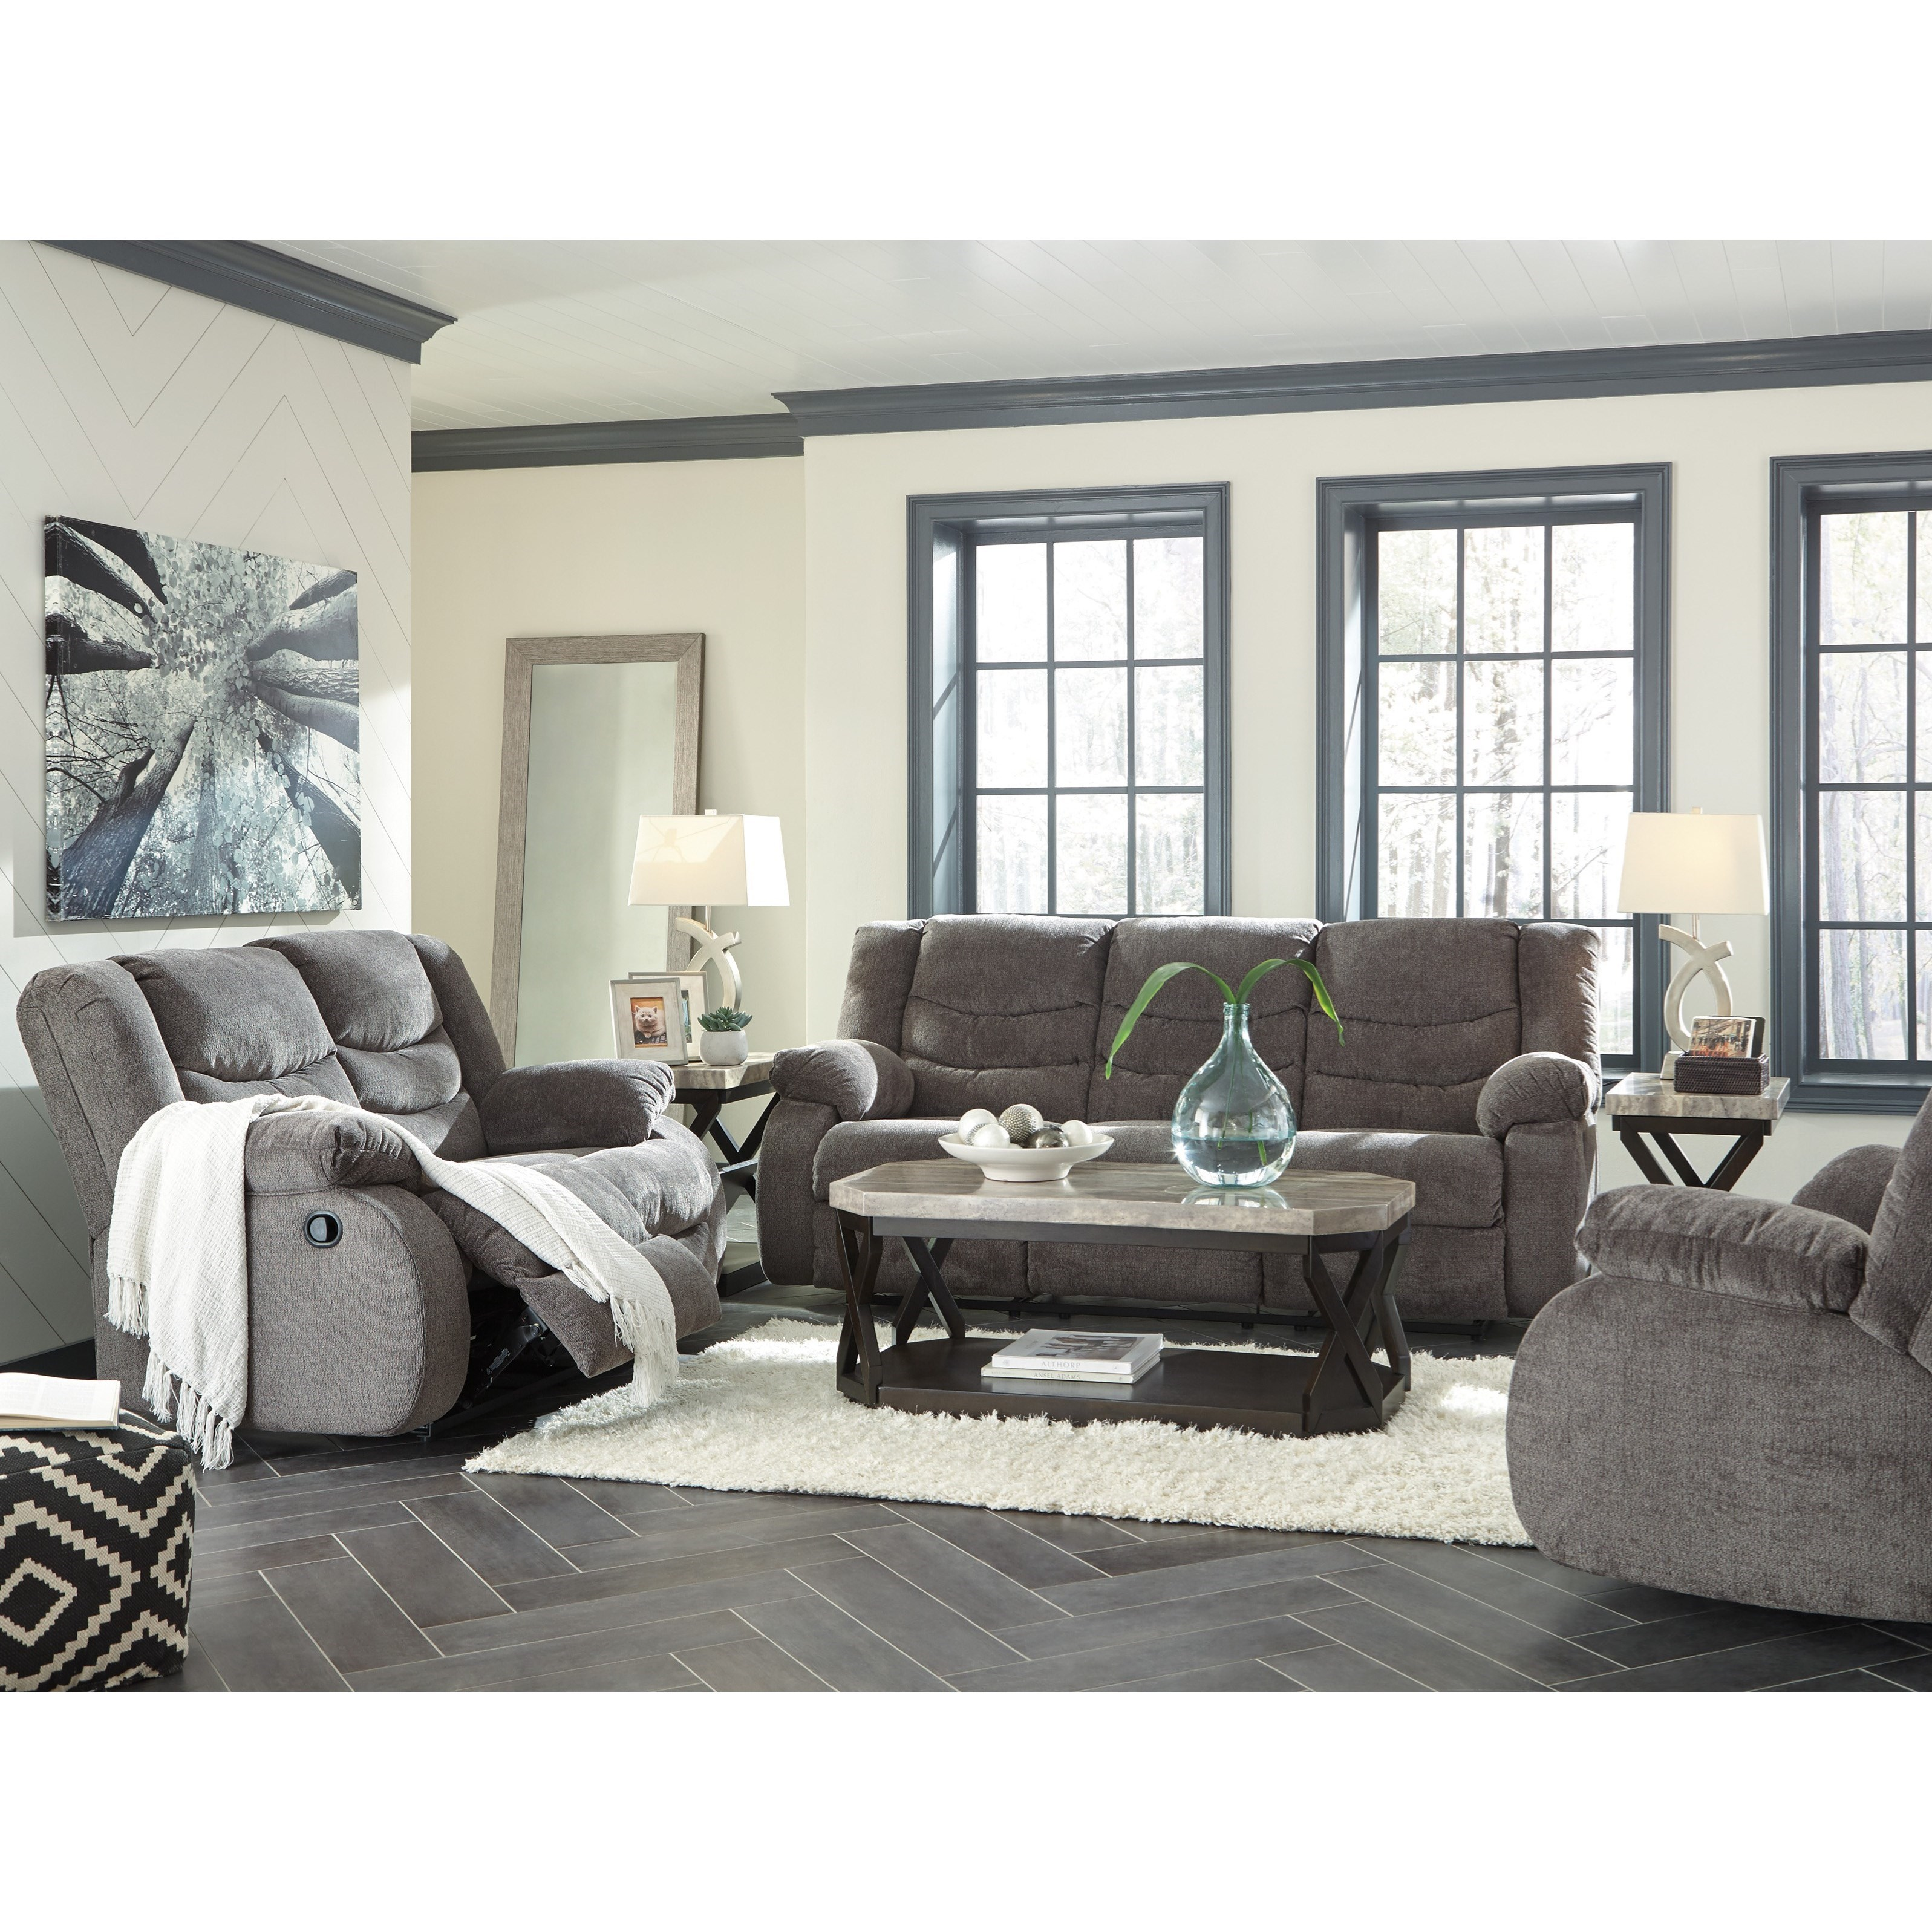 Tulen Reclining Living Room Group by Benchcraft at Virginia Furniture Market